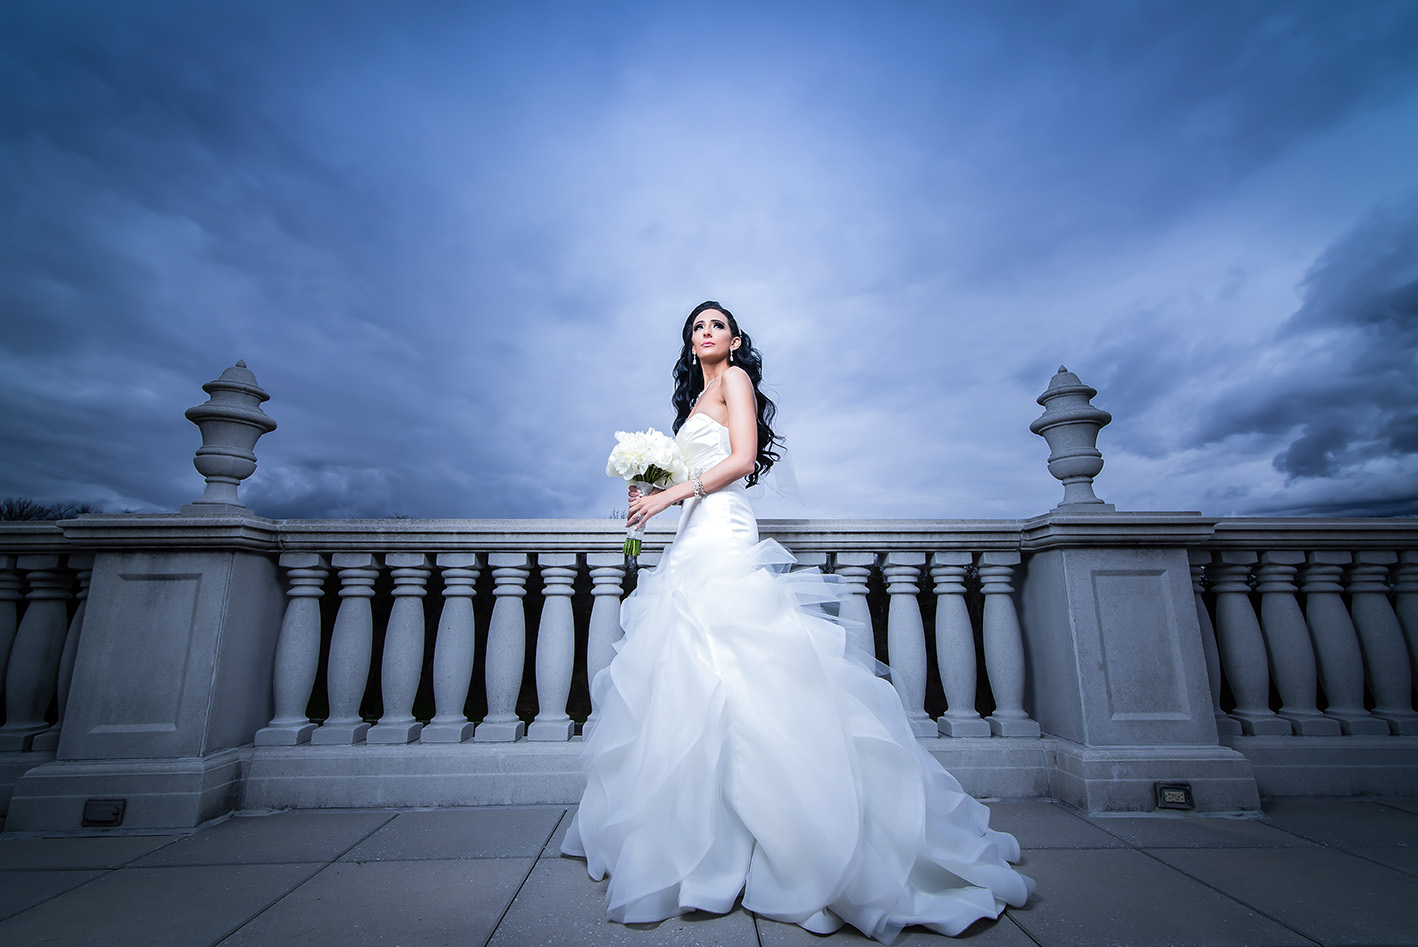 wedding_photography_dhoom_studio_new_york79 PORTFOLIO